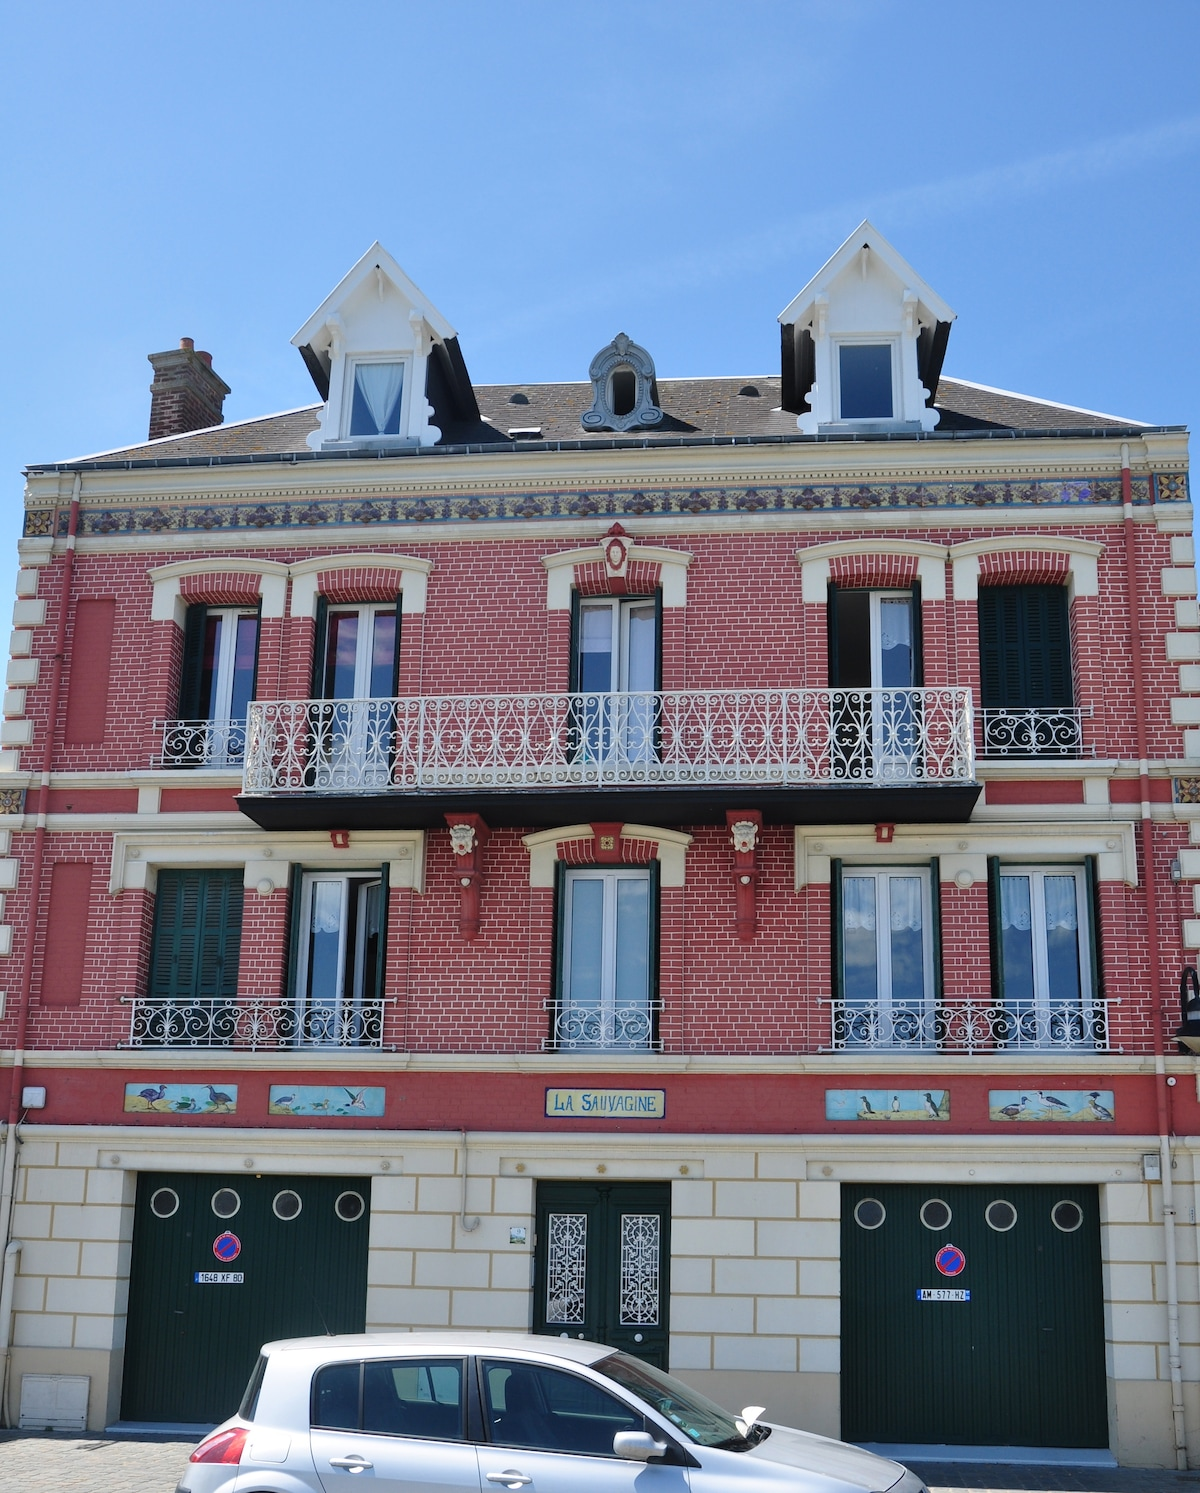 L'appartement se situe a l'etage avec le balcon / The flat is located on the second floor